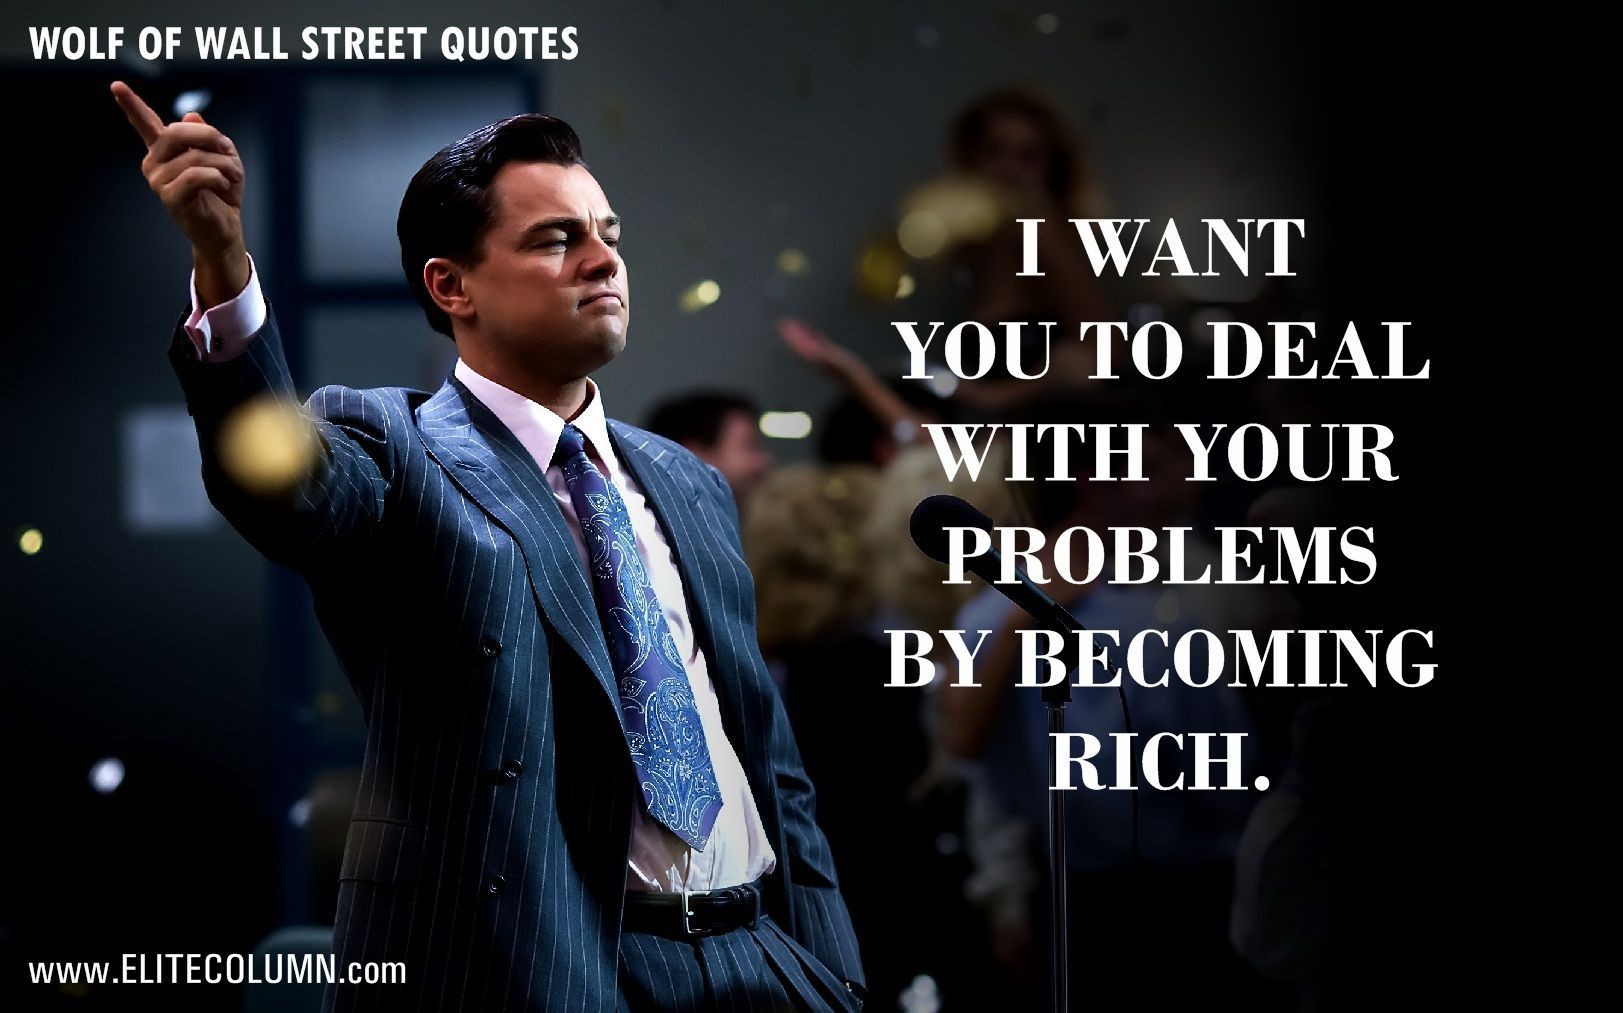 Wolf Of Wall Street Quotes Wallpapers Top Free Wolf Of Wall Street Quotes Backgrounds Wallpaperaccess